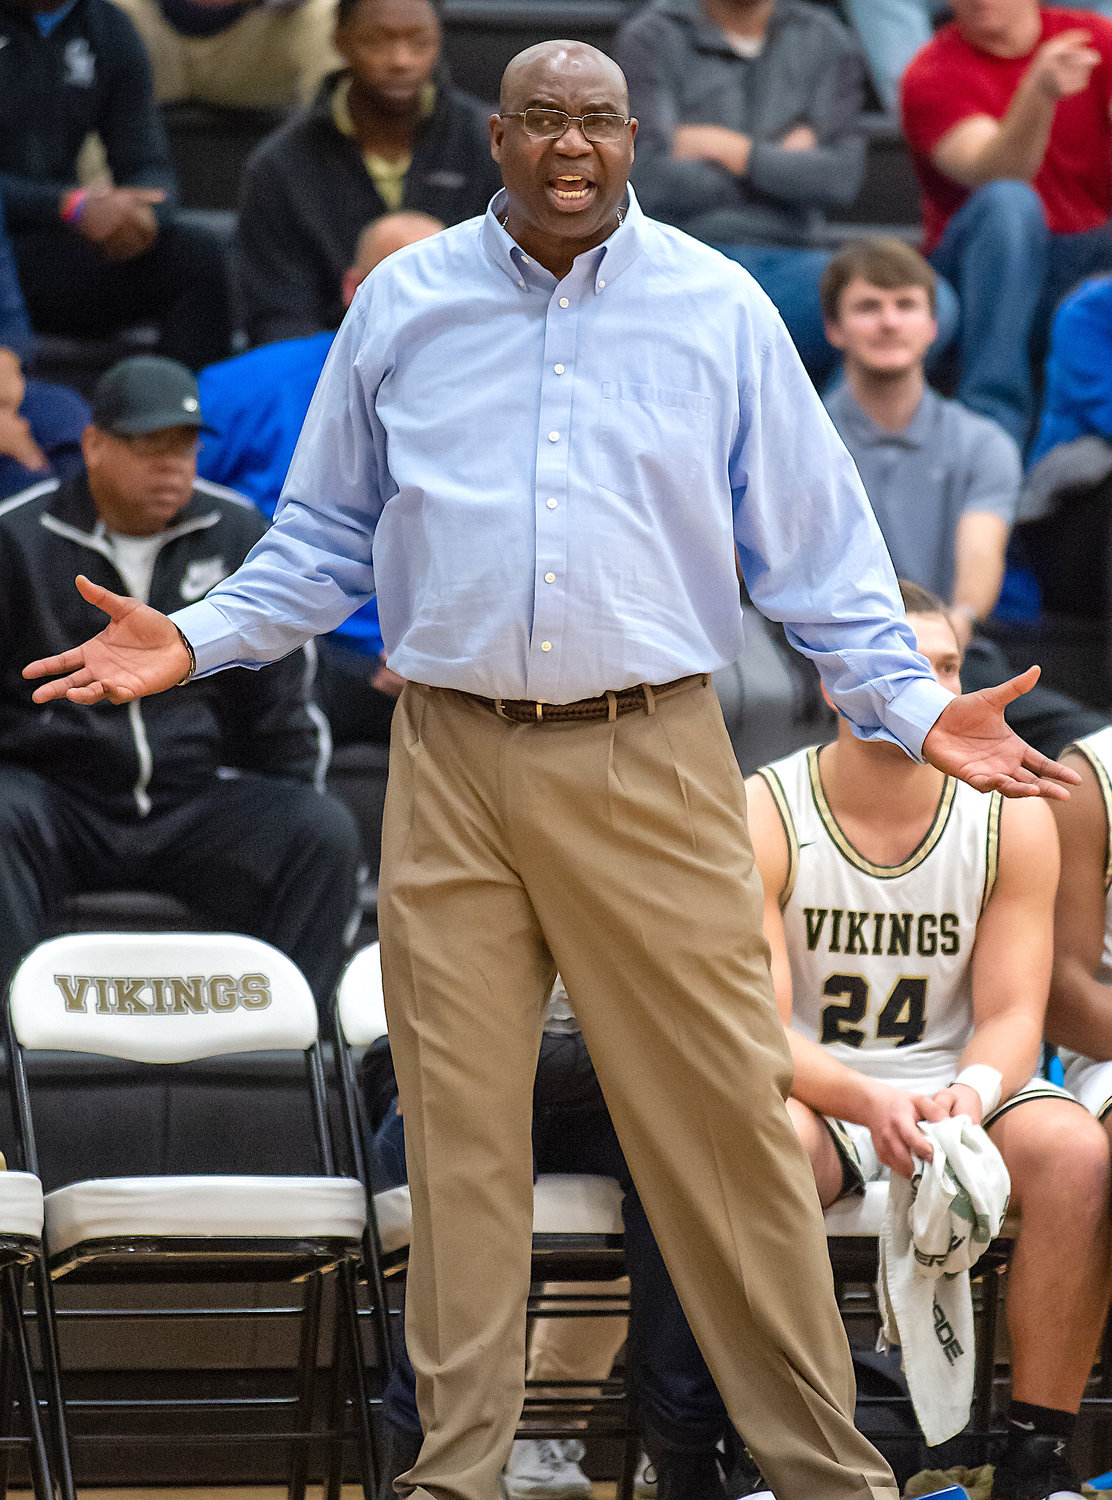 Jasper head coach Robert Epps has the Vikings in the Northwest Regional Tournament for the first time since 2008.